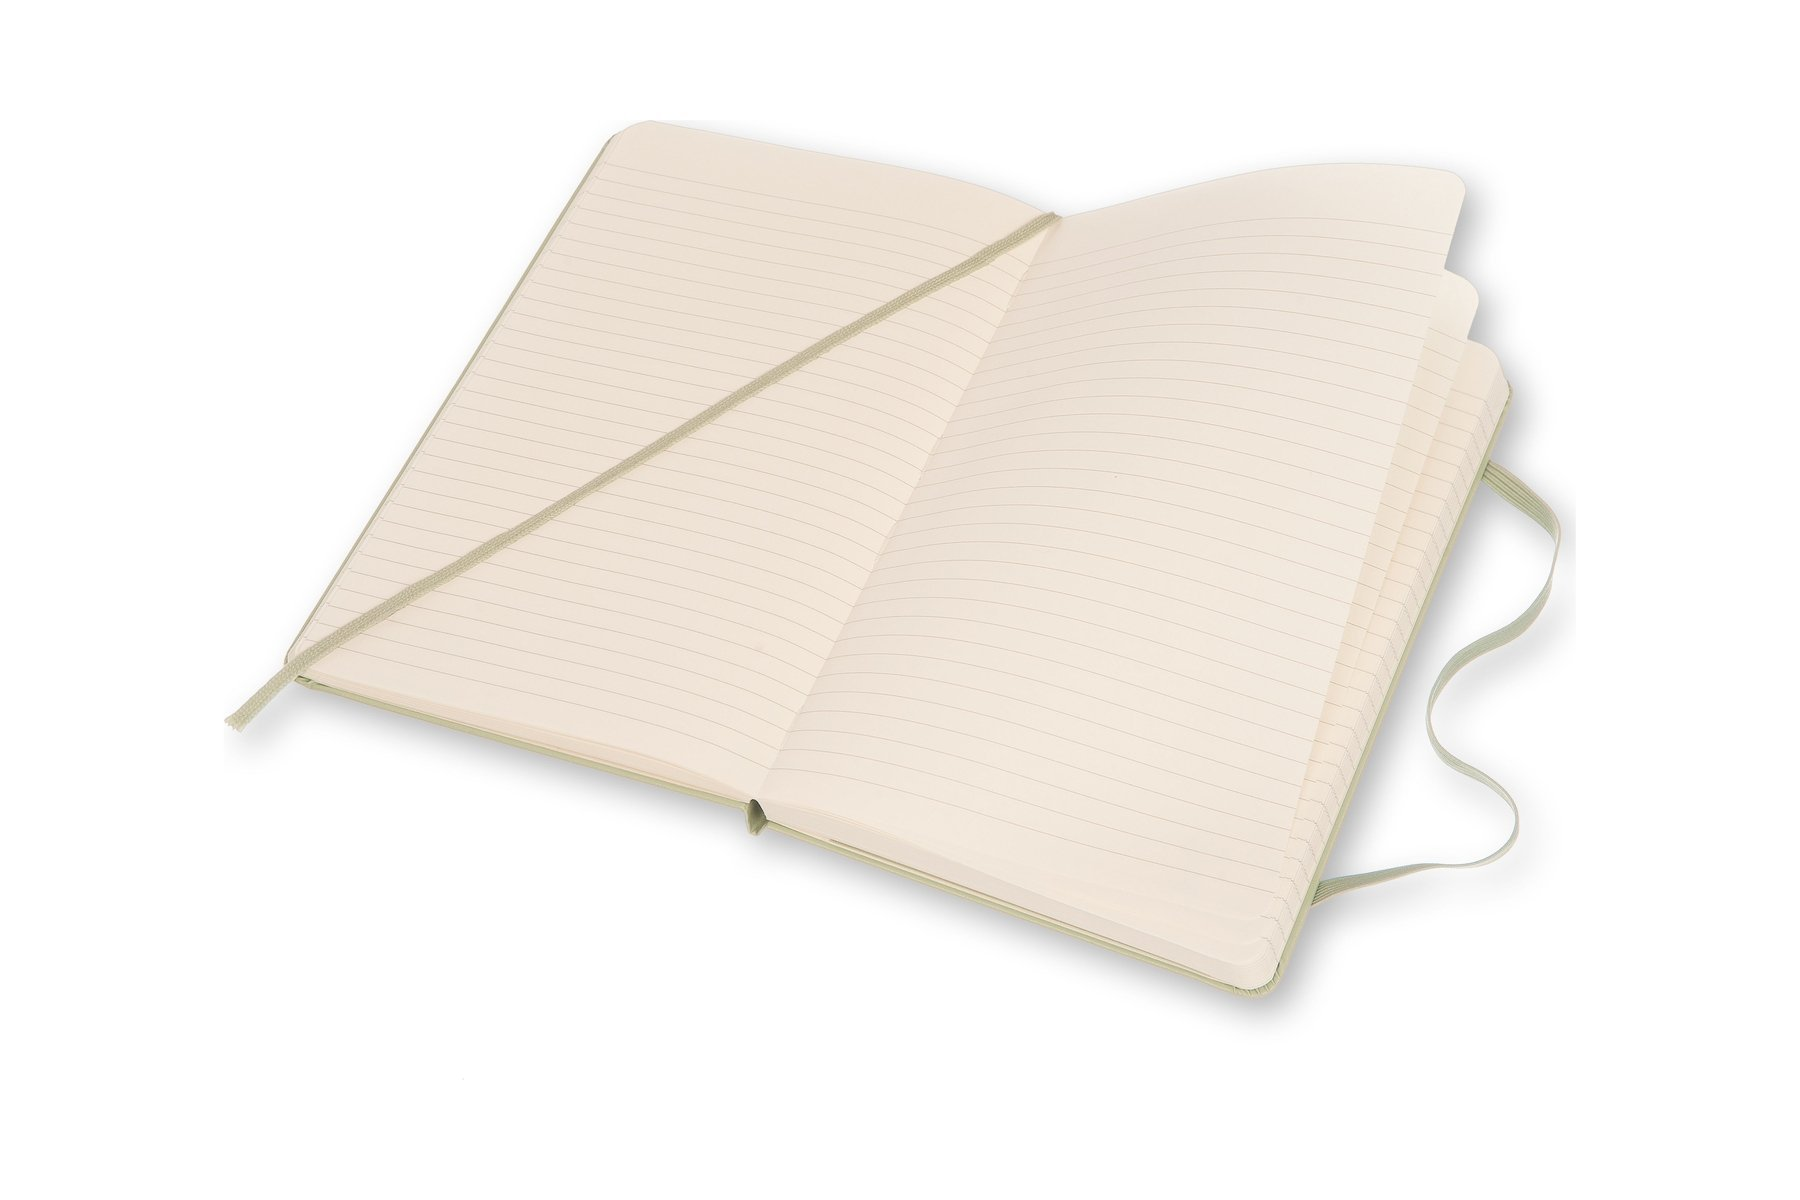 Moleskine Classic Notebook, Large, Ruled, Willow Green, Hard Cover (5 x 8.25) by Moleskine (Image #4)